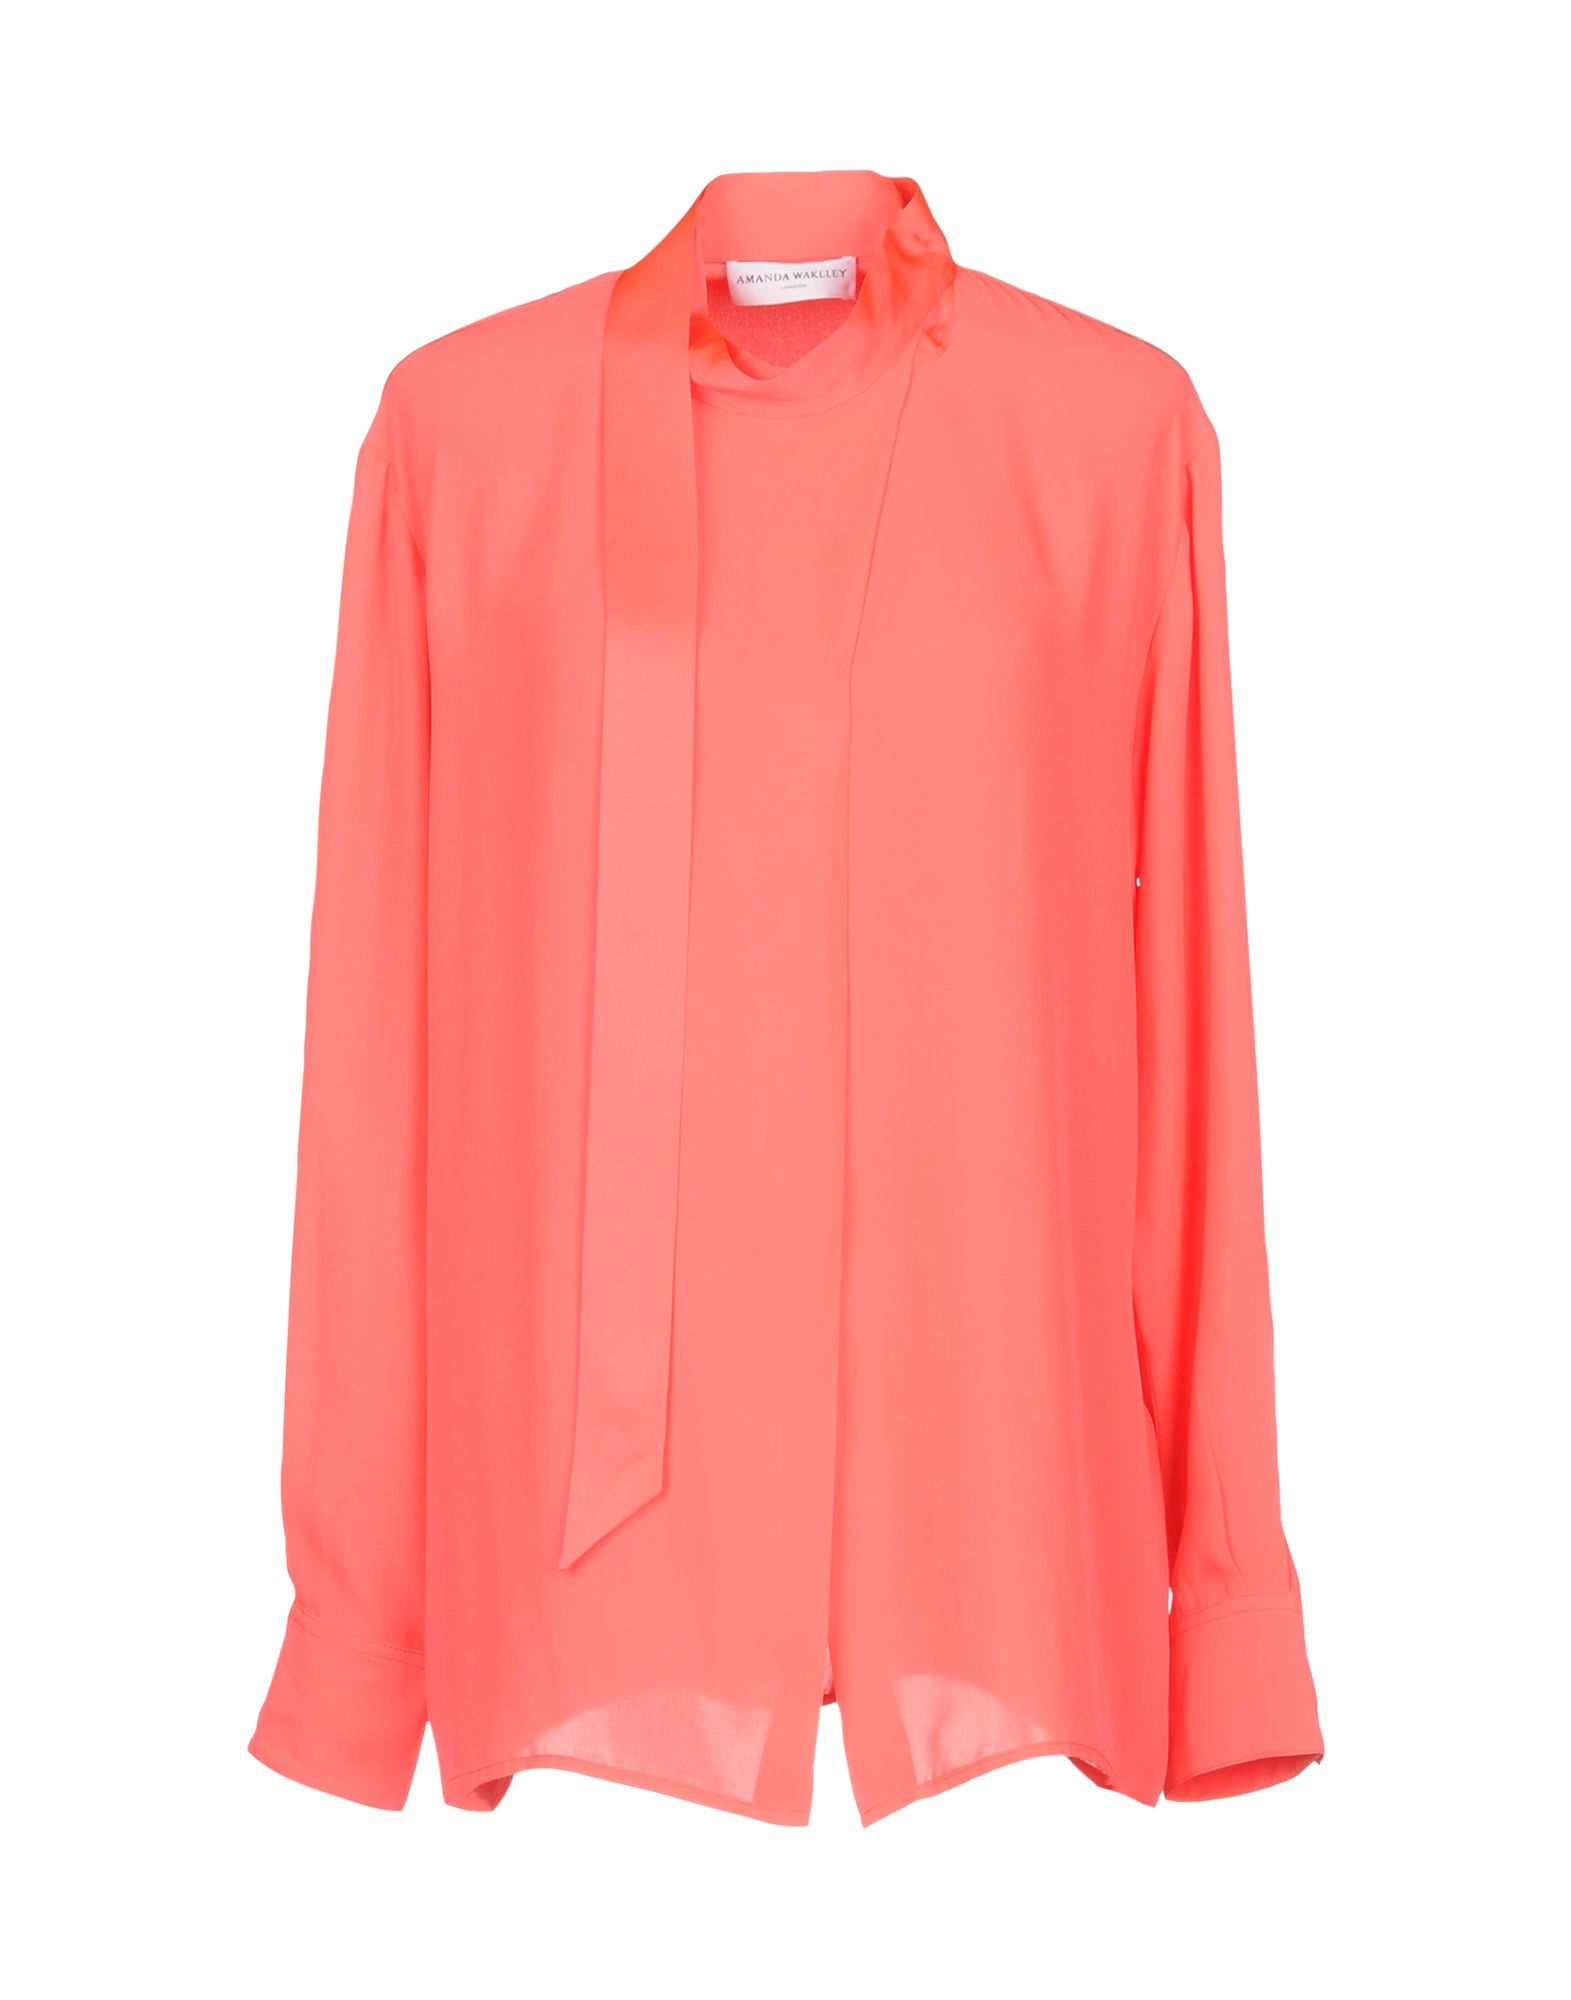 AMANDA WAKELEY Shirts & Blouses With Bow in Coral